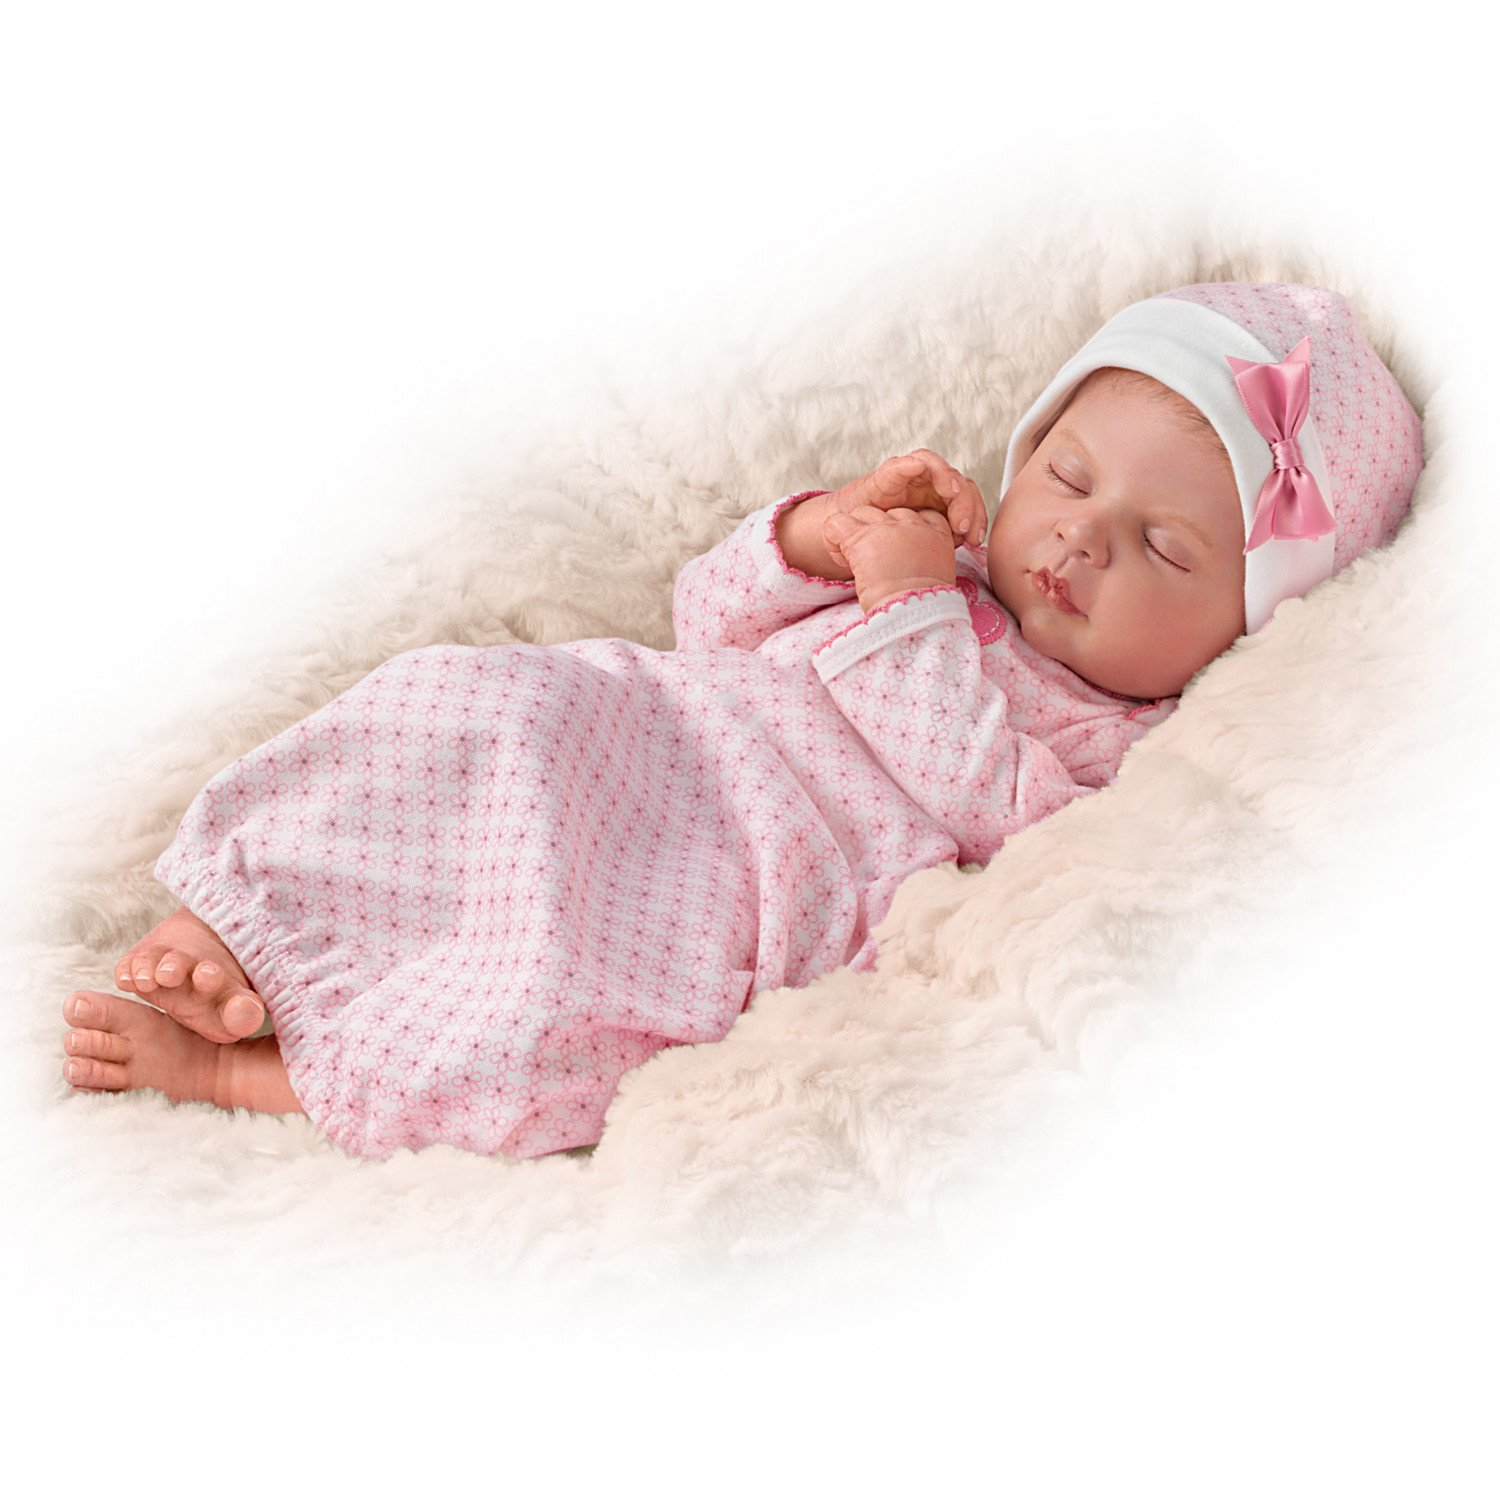 Sweet Dreams, Serenity Breathes TrueTouch Silicone with Hand-Rooted Hair - Lifelike, Realistic Newborn Baby Doll 18-inches by The Ashton-Drake Galleries by The Ashton-Drake Galleries